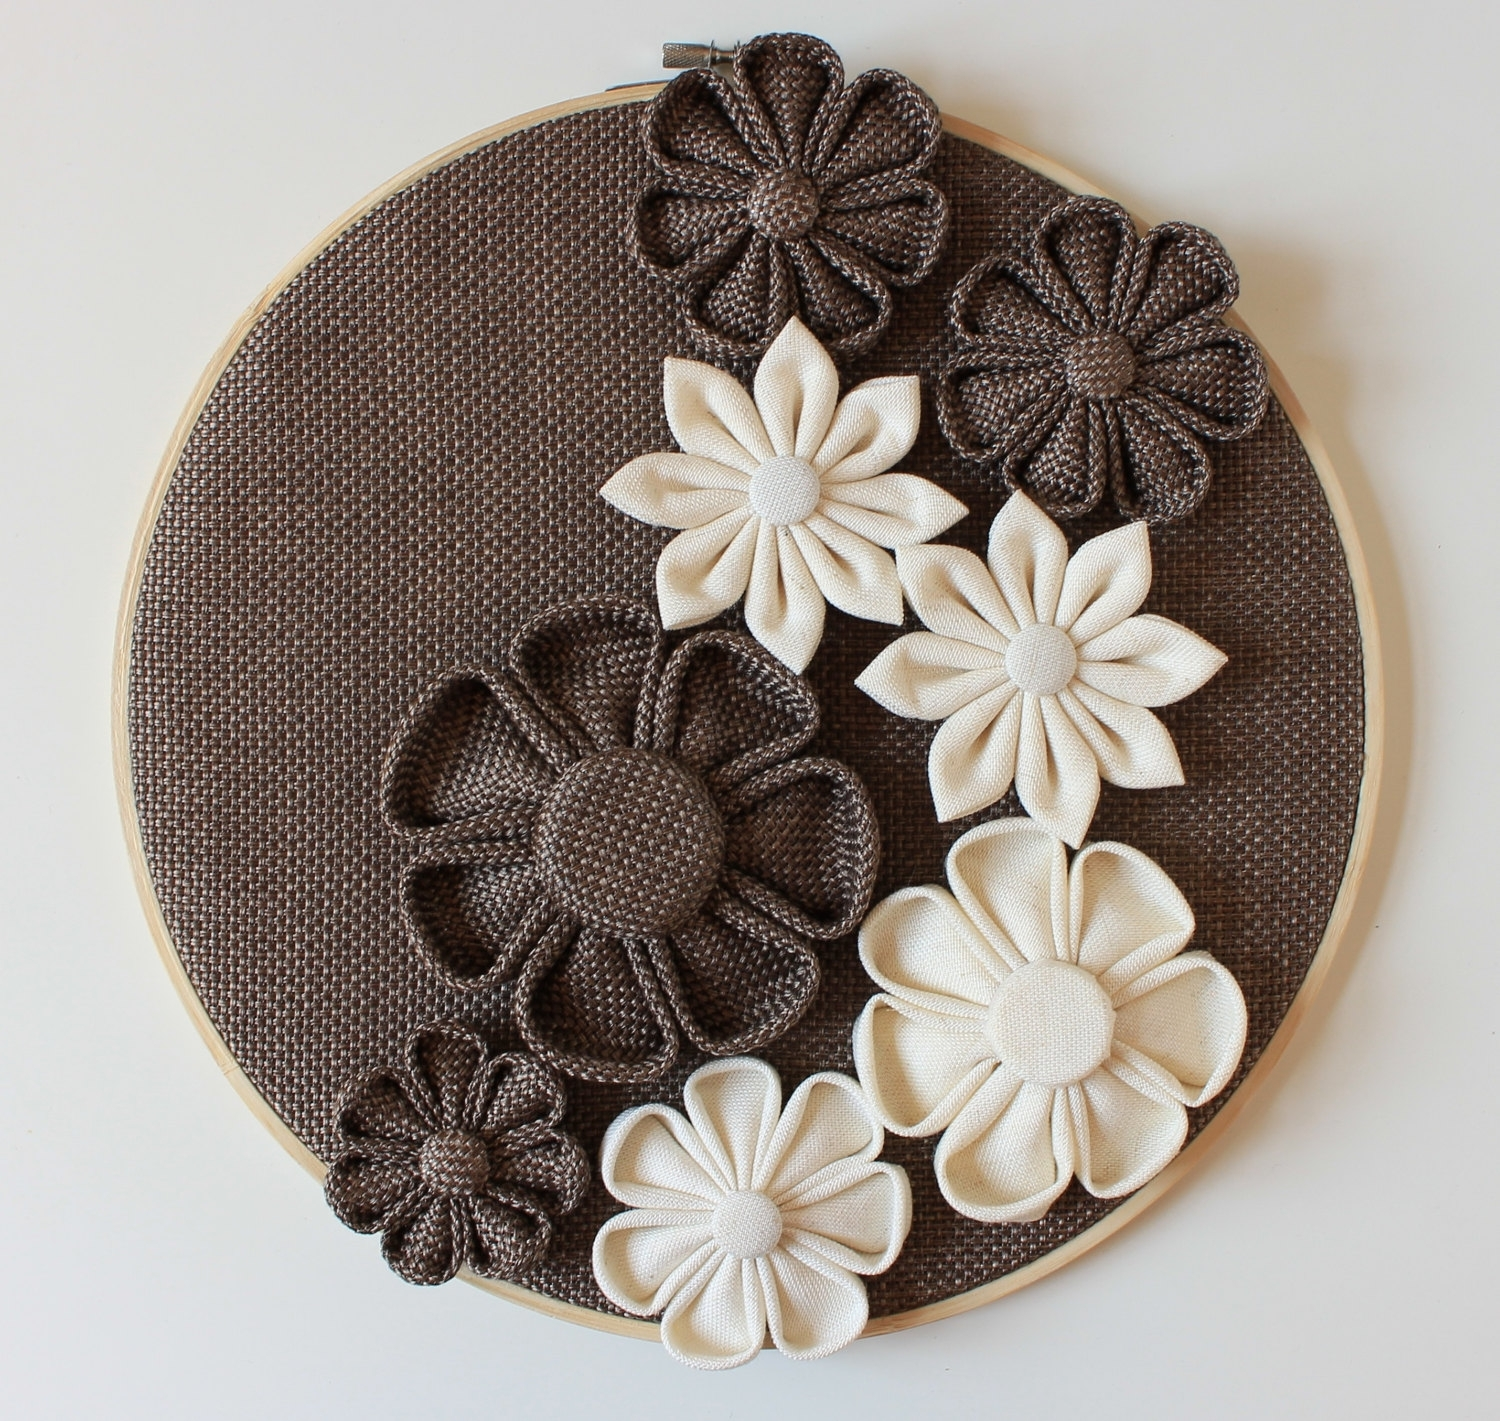 3D Wall Decor Wall Flowers Home Decor Wallneschdecoration With Regard To Recent Fabric Flower Wall Art (View 1 of 15)